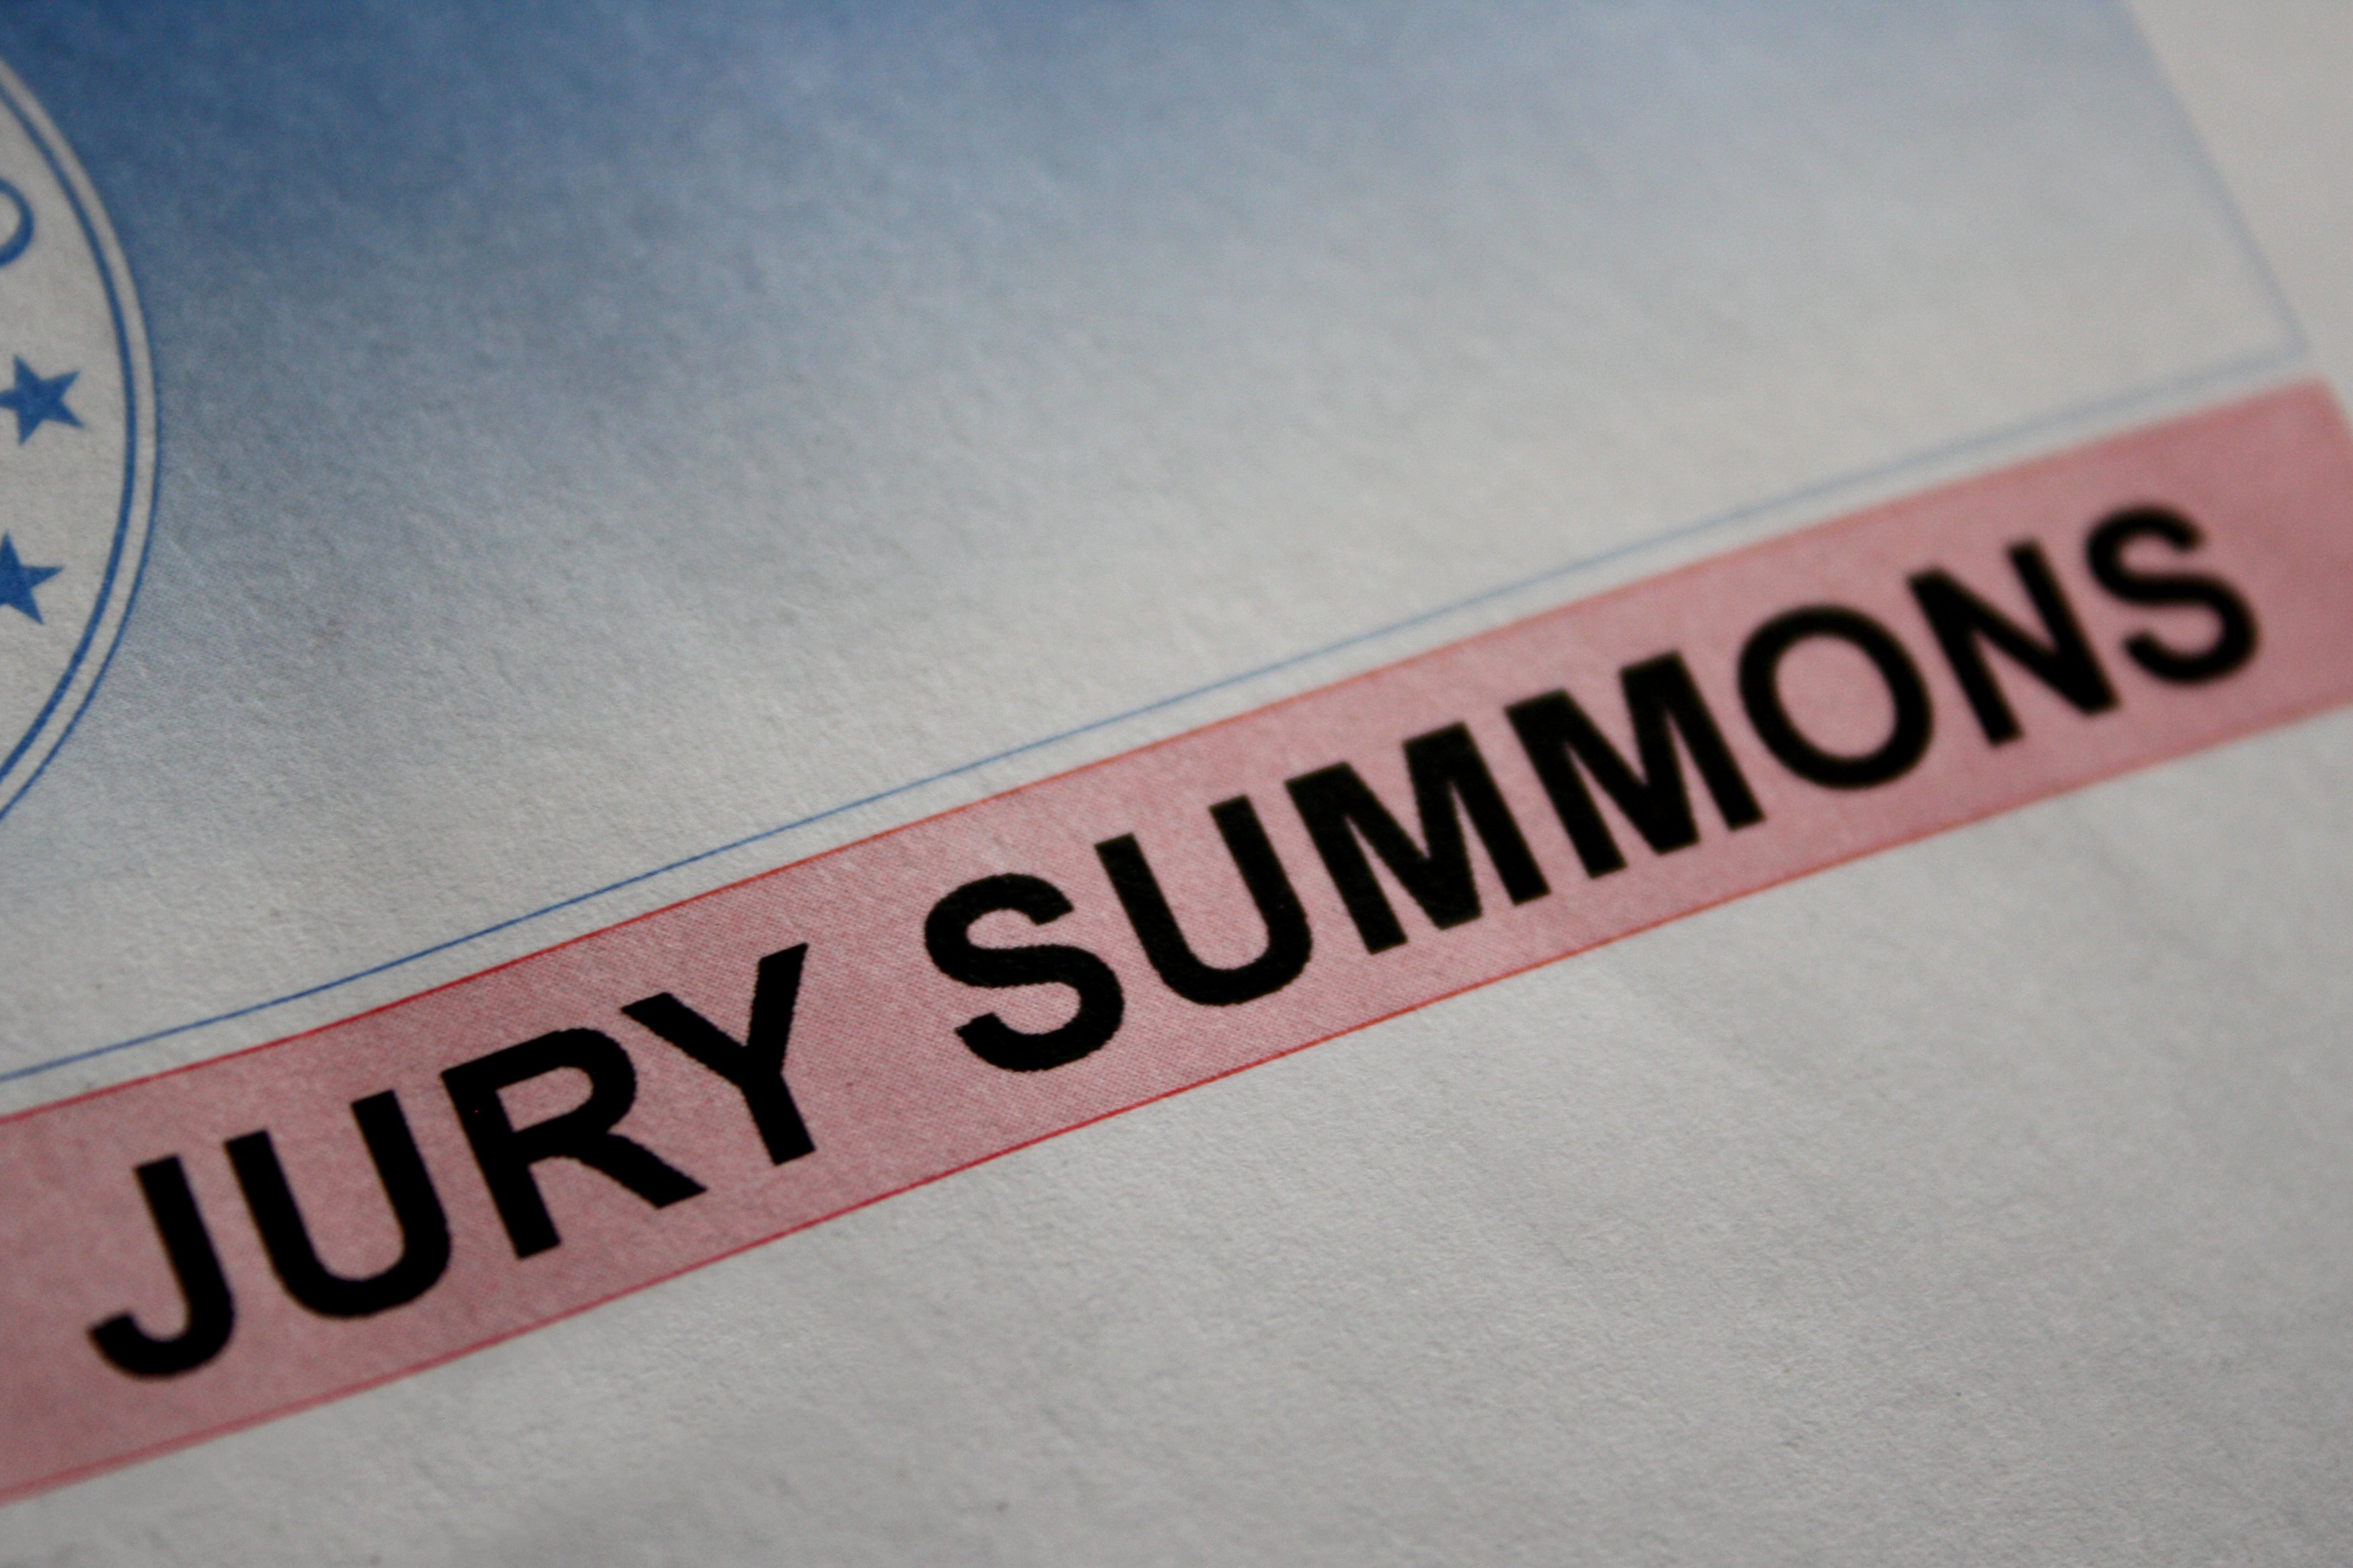 Jury Summons Picture | Free Photograph | Photos Public Domain